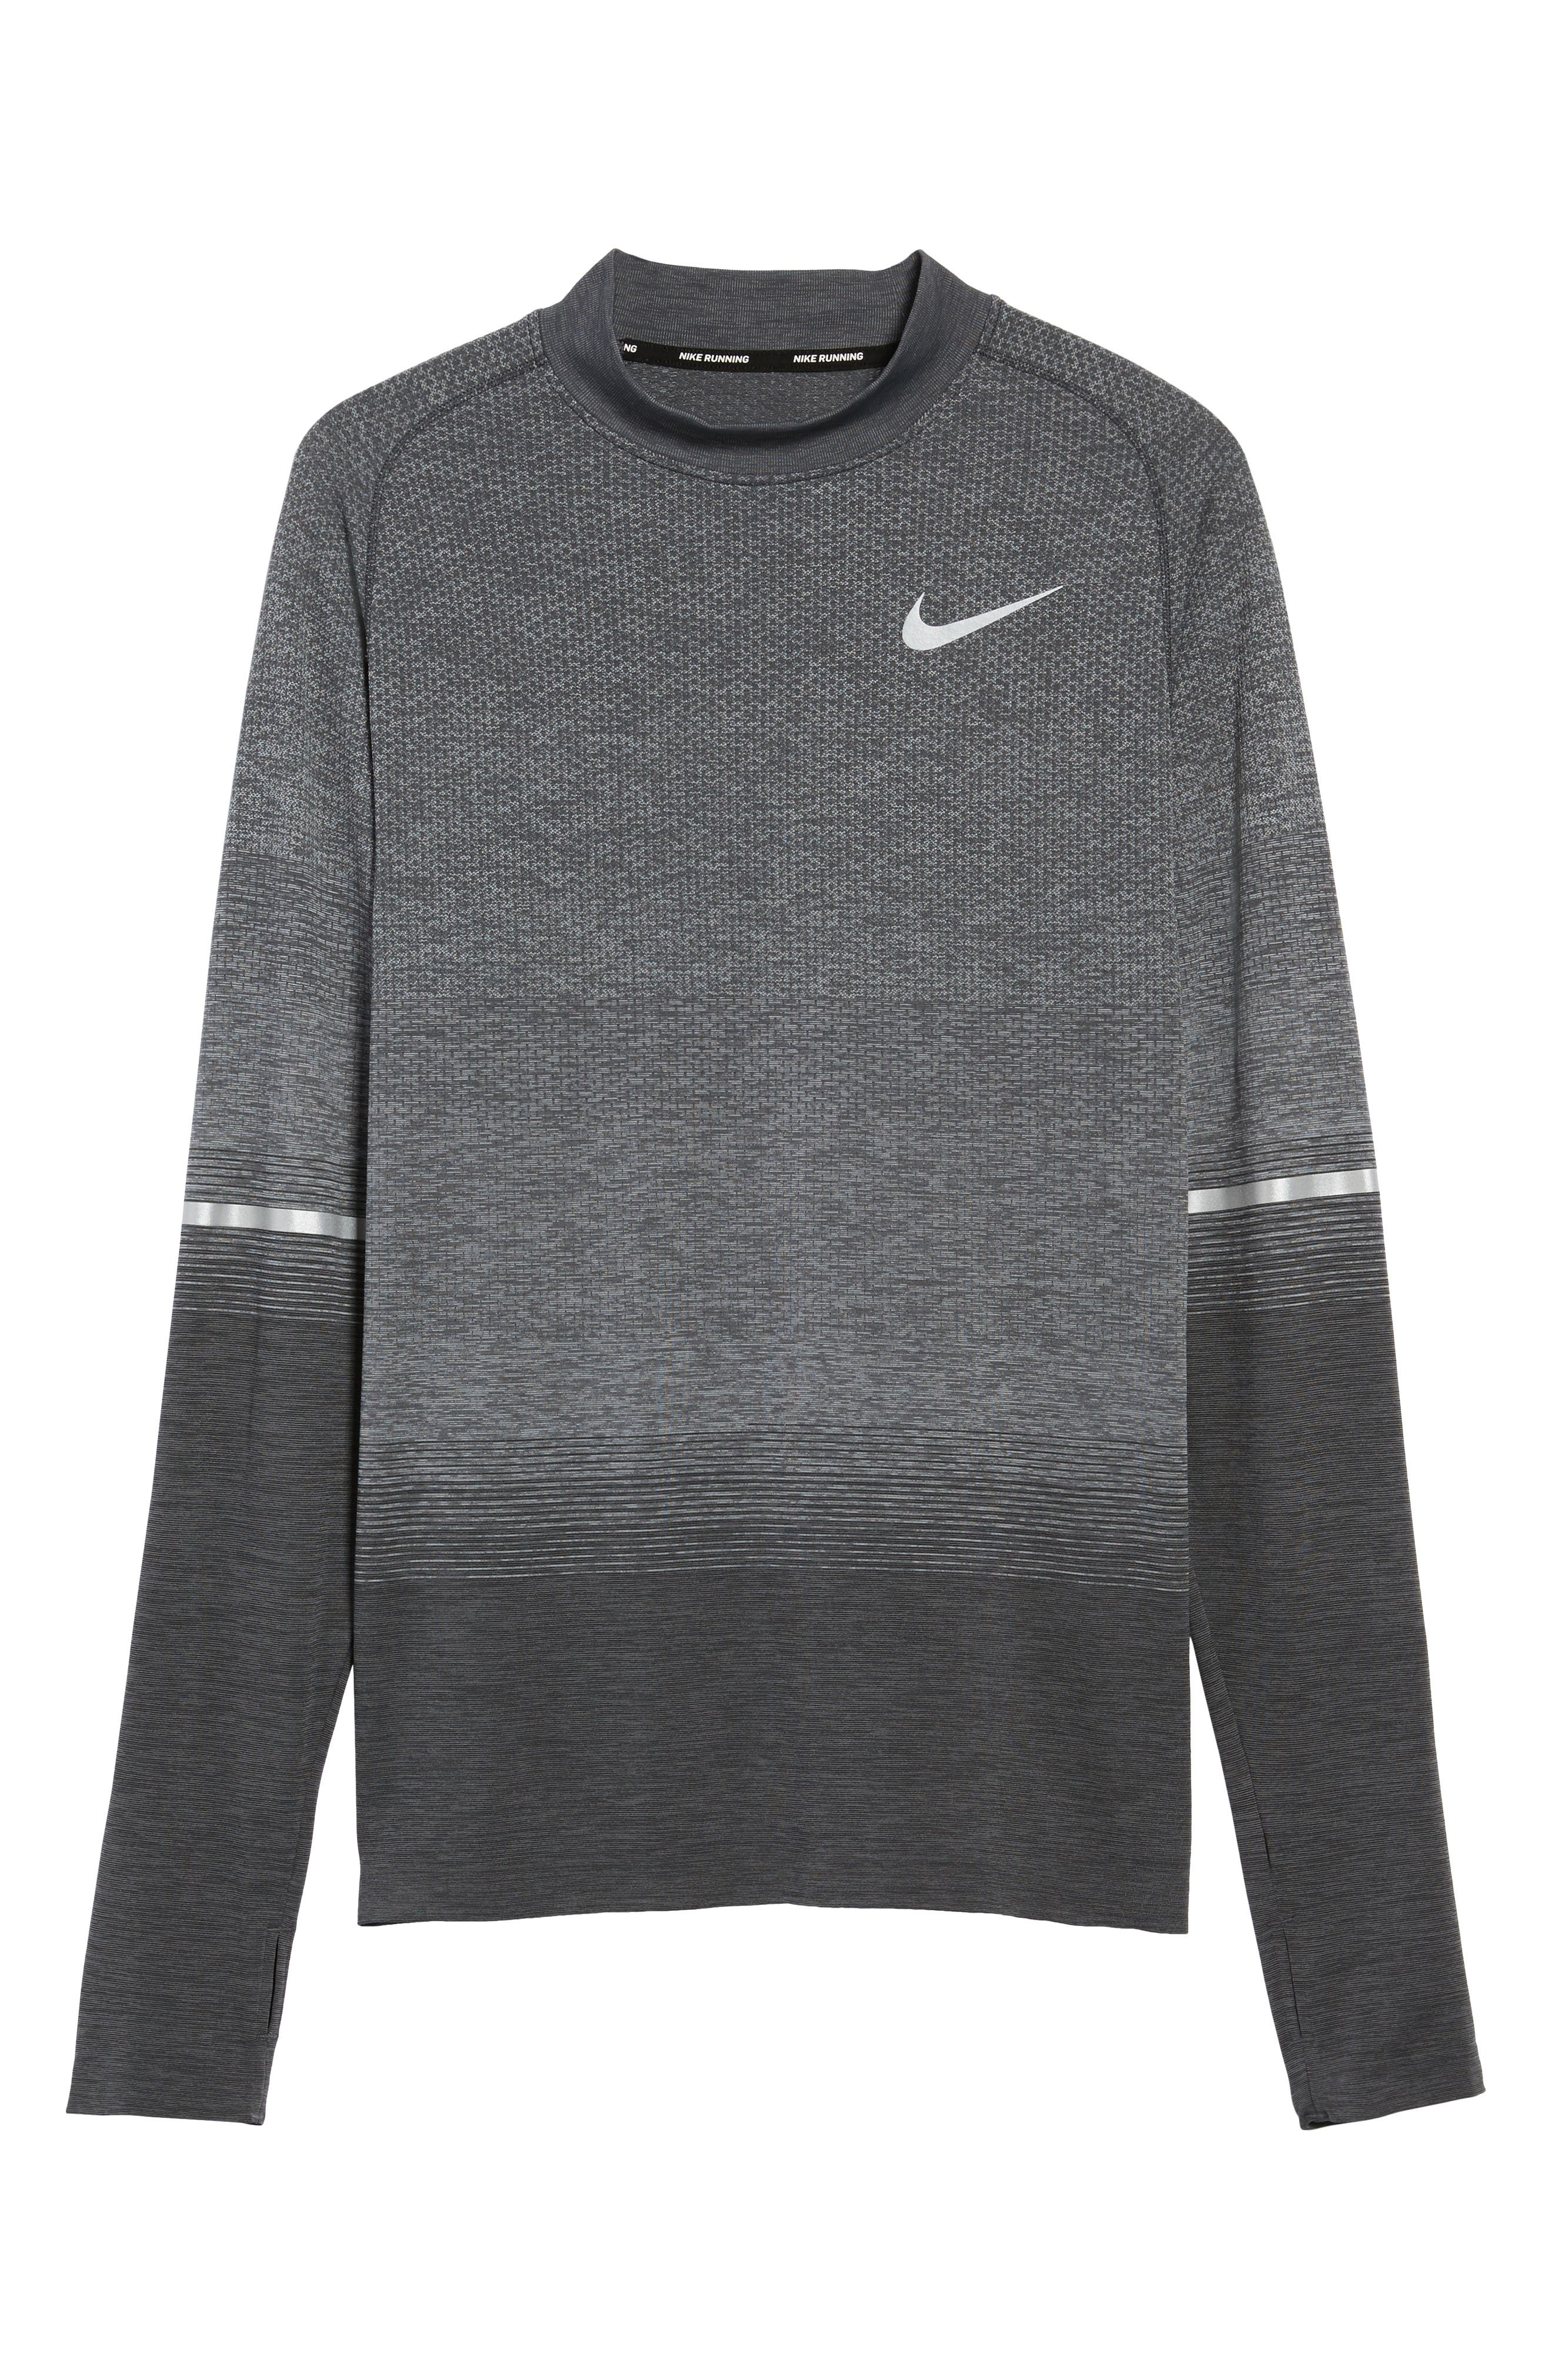 Dry Running Mock Neck Long Sleeve T-Shirt,                             Alternate thumbnail 6, color,                             ANTHRACITE/ WOLF GREY/ GREY